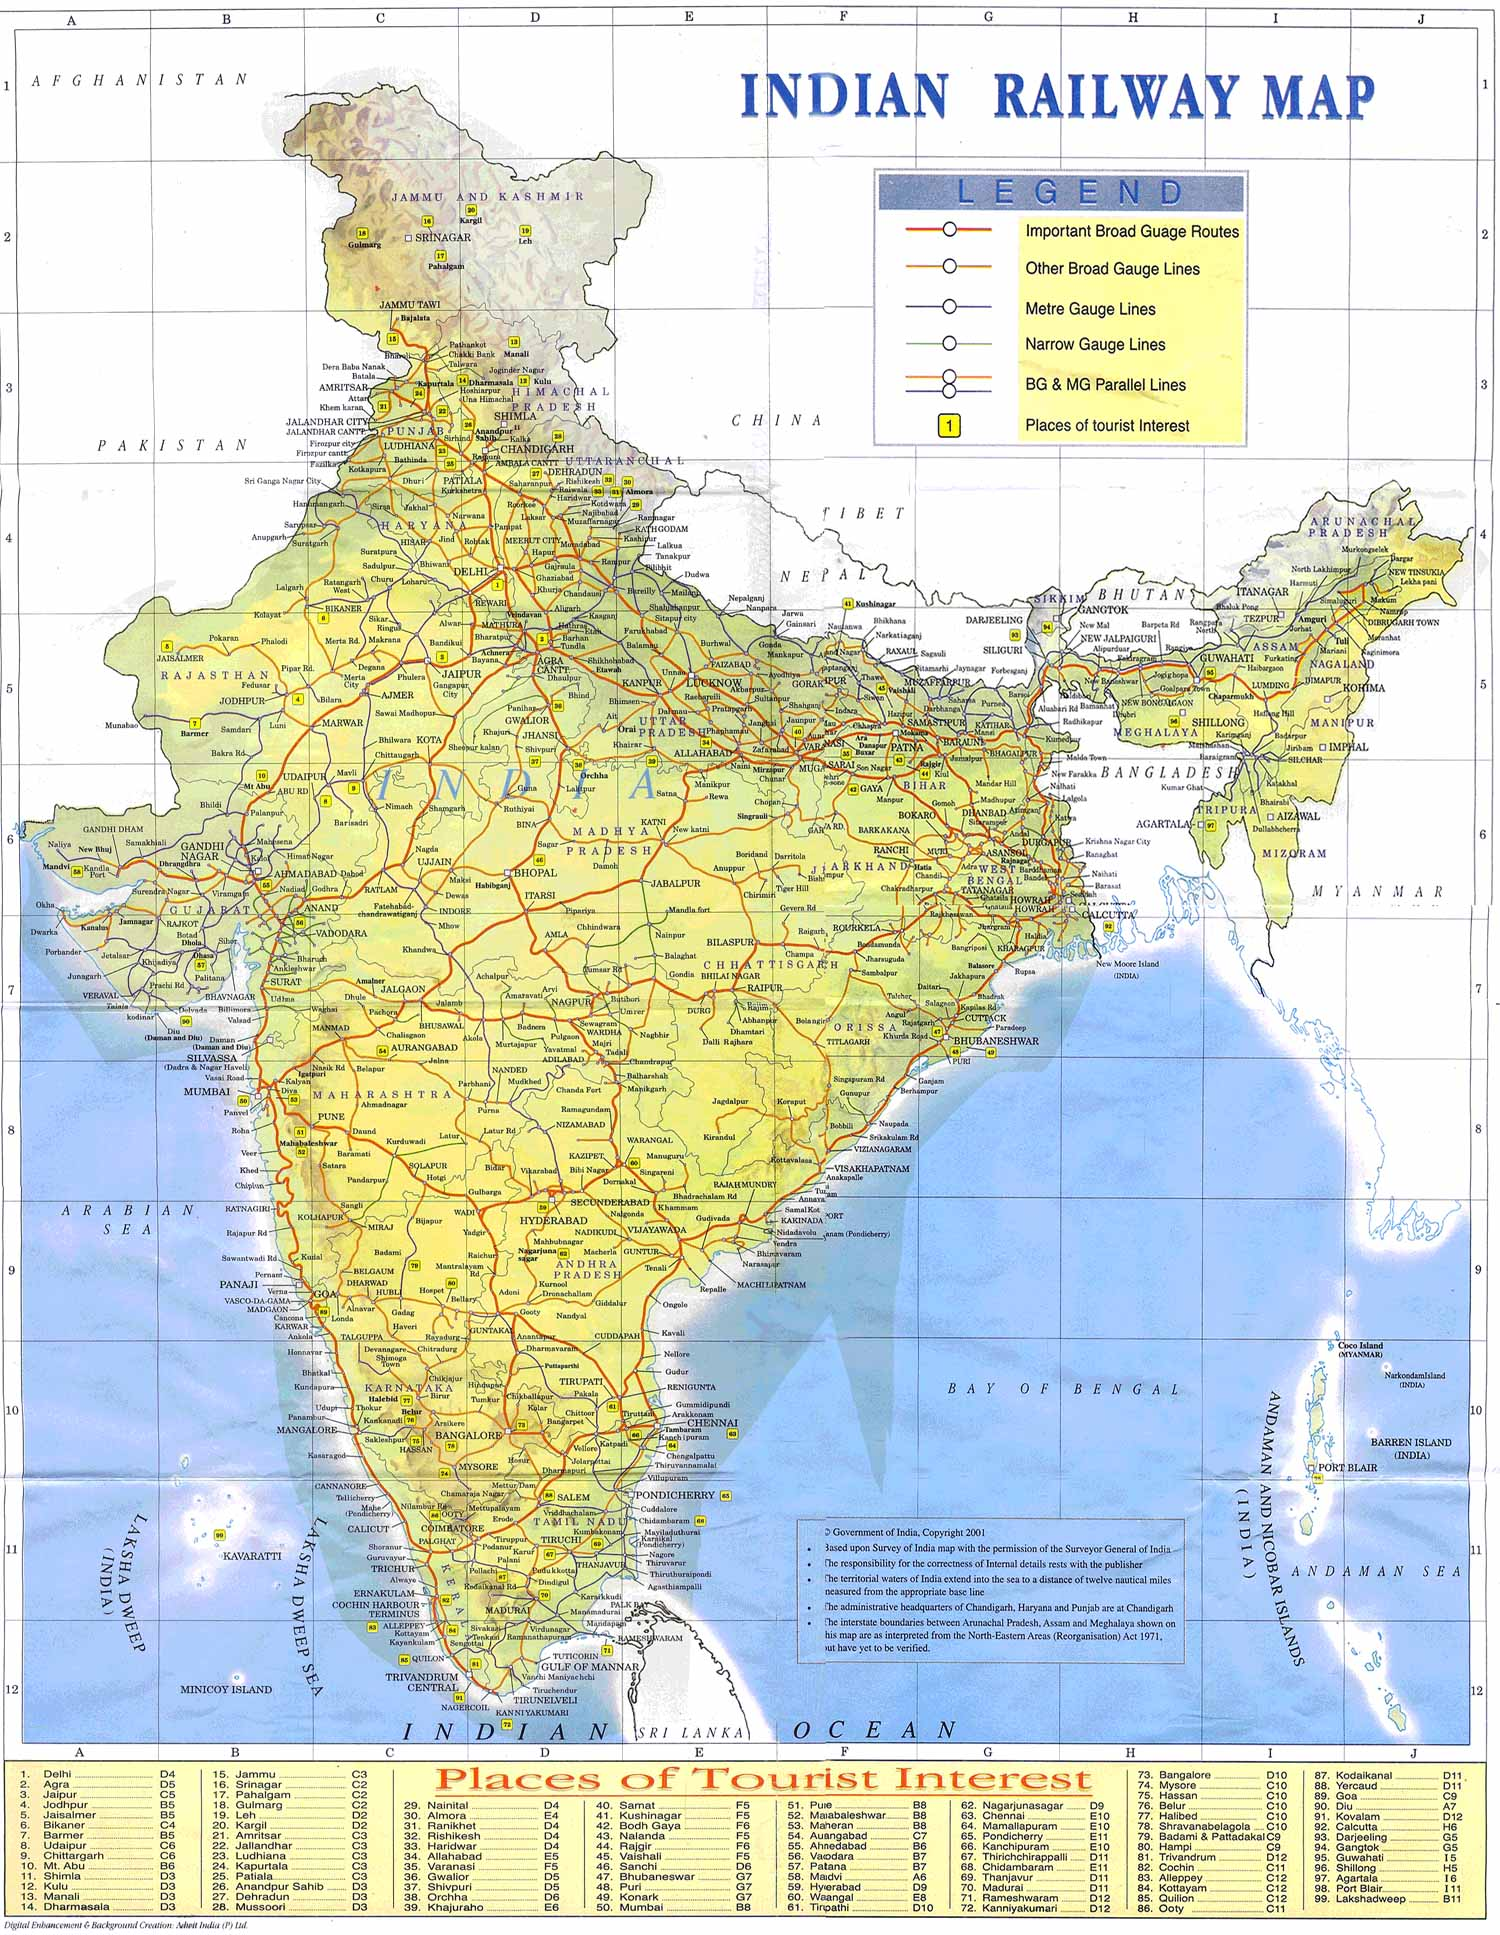 India Road Map Image